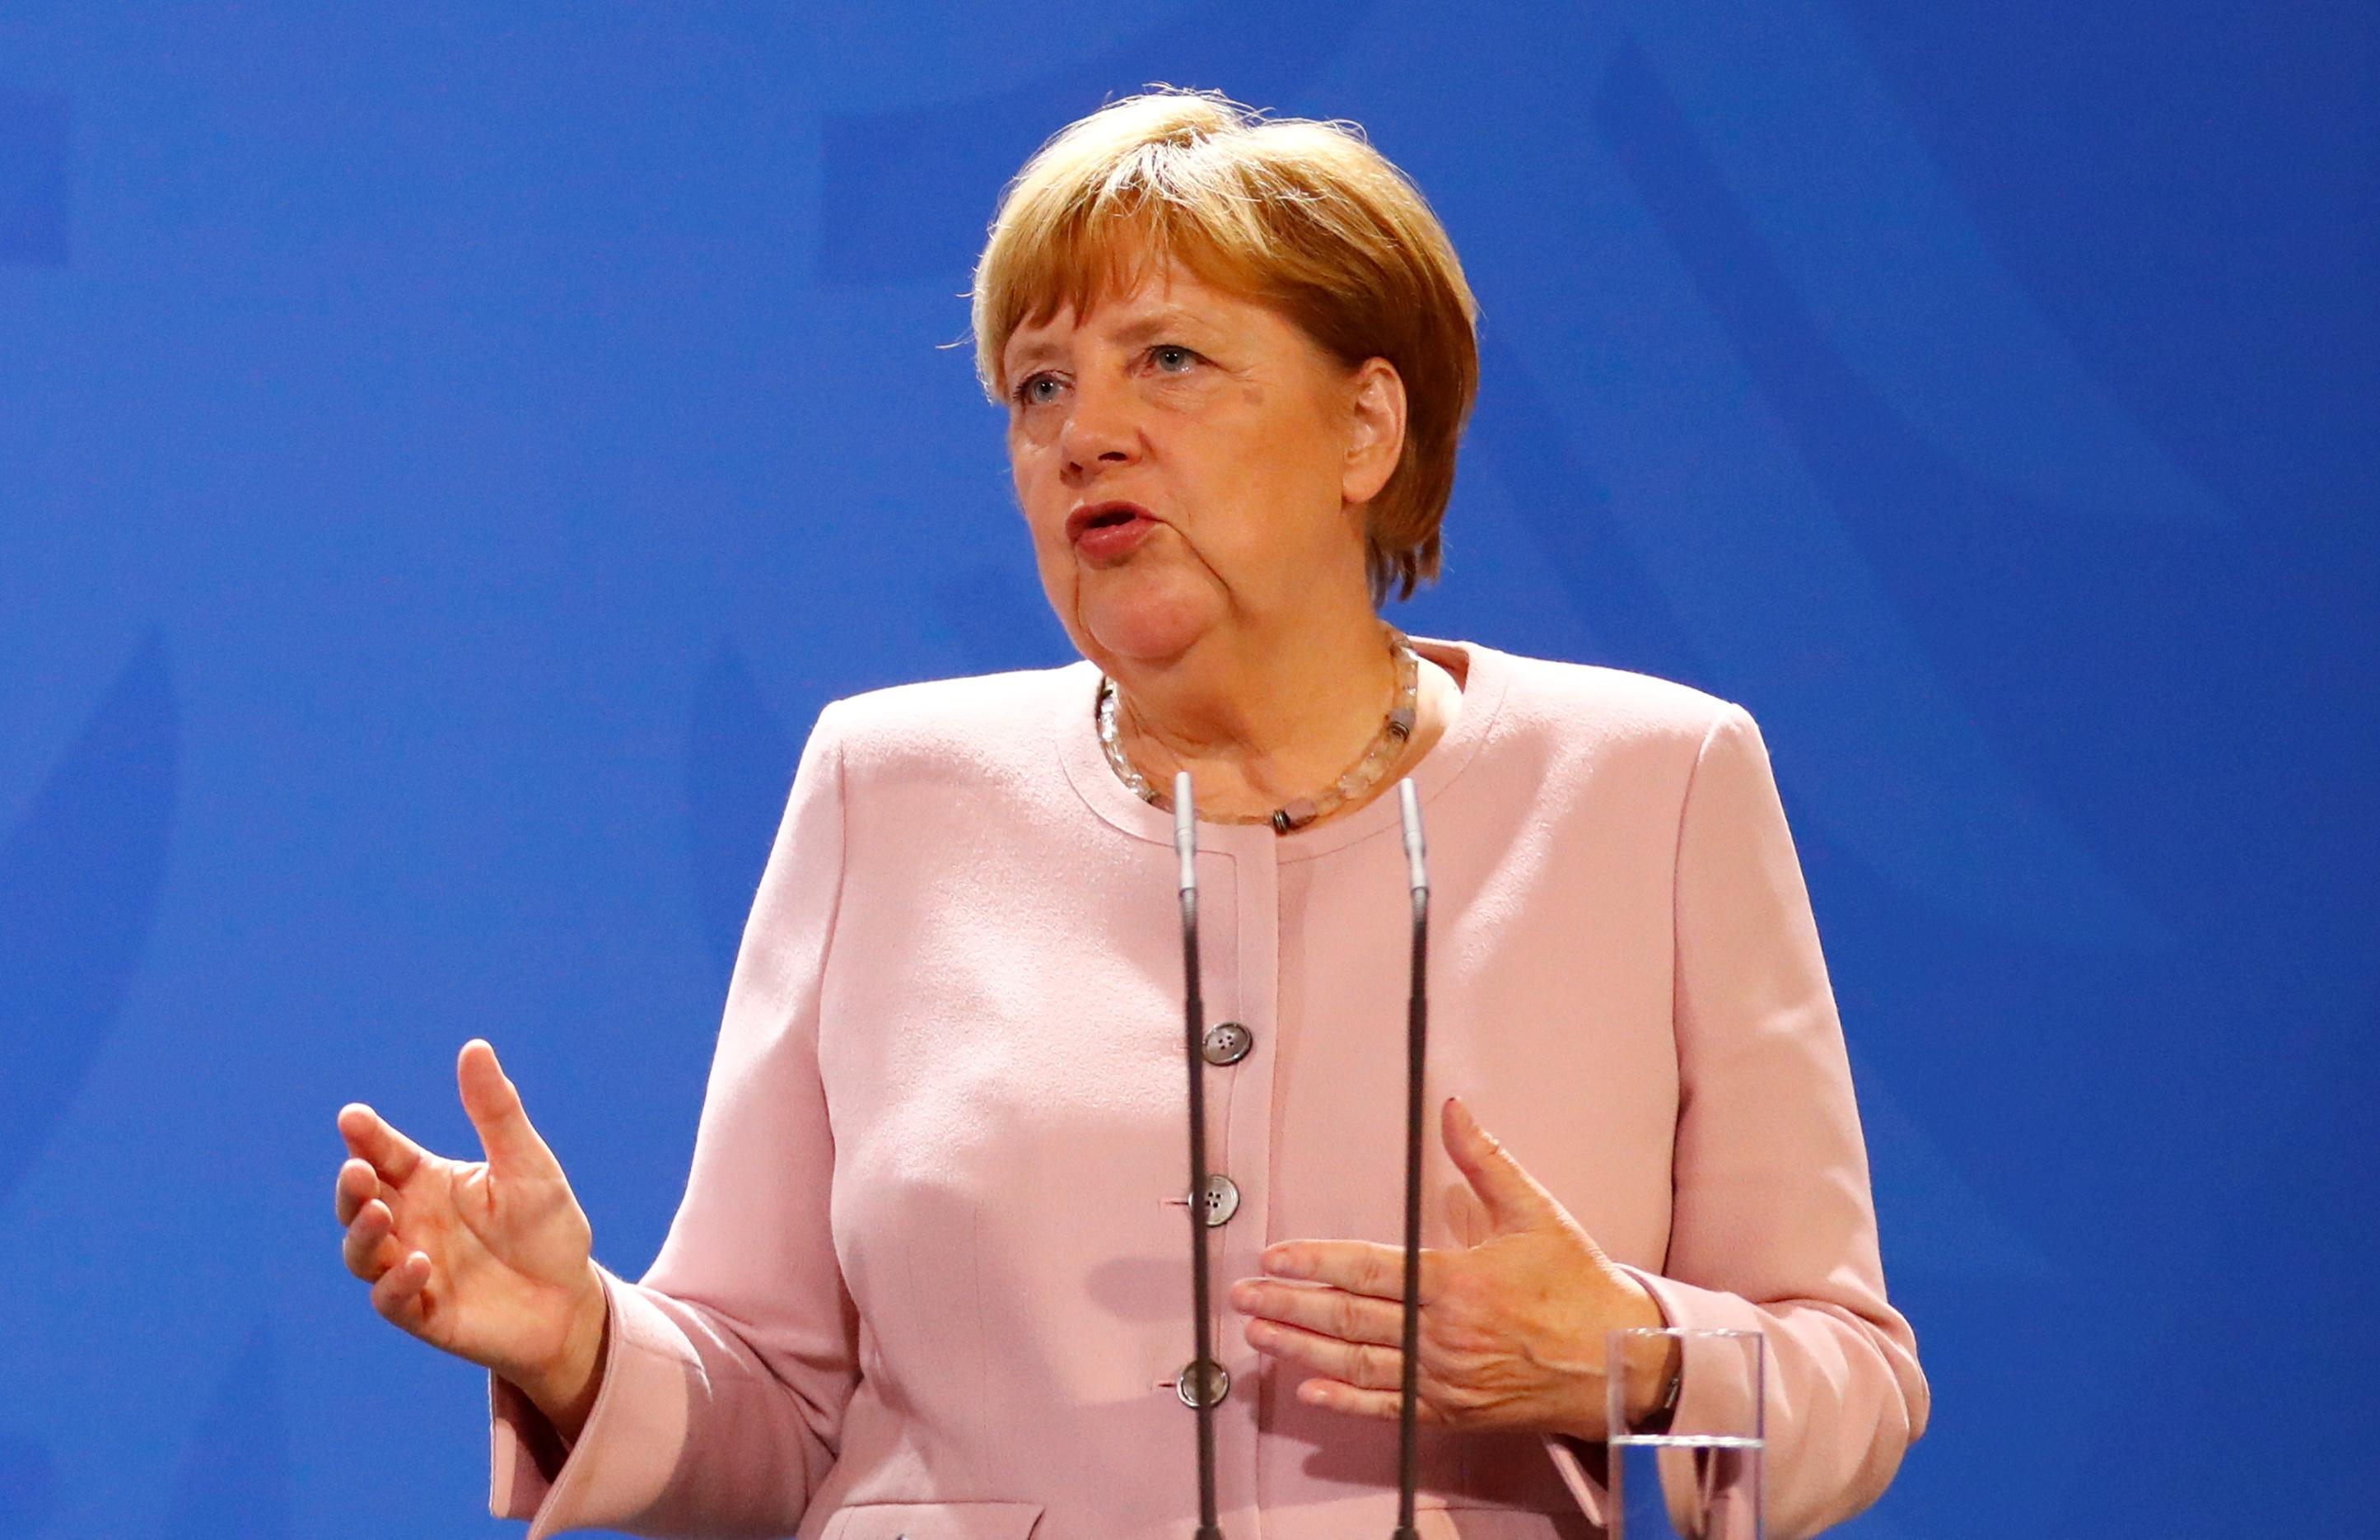 With rents spiraling, Merkel tells landlords: Serve the public